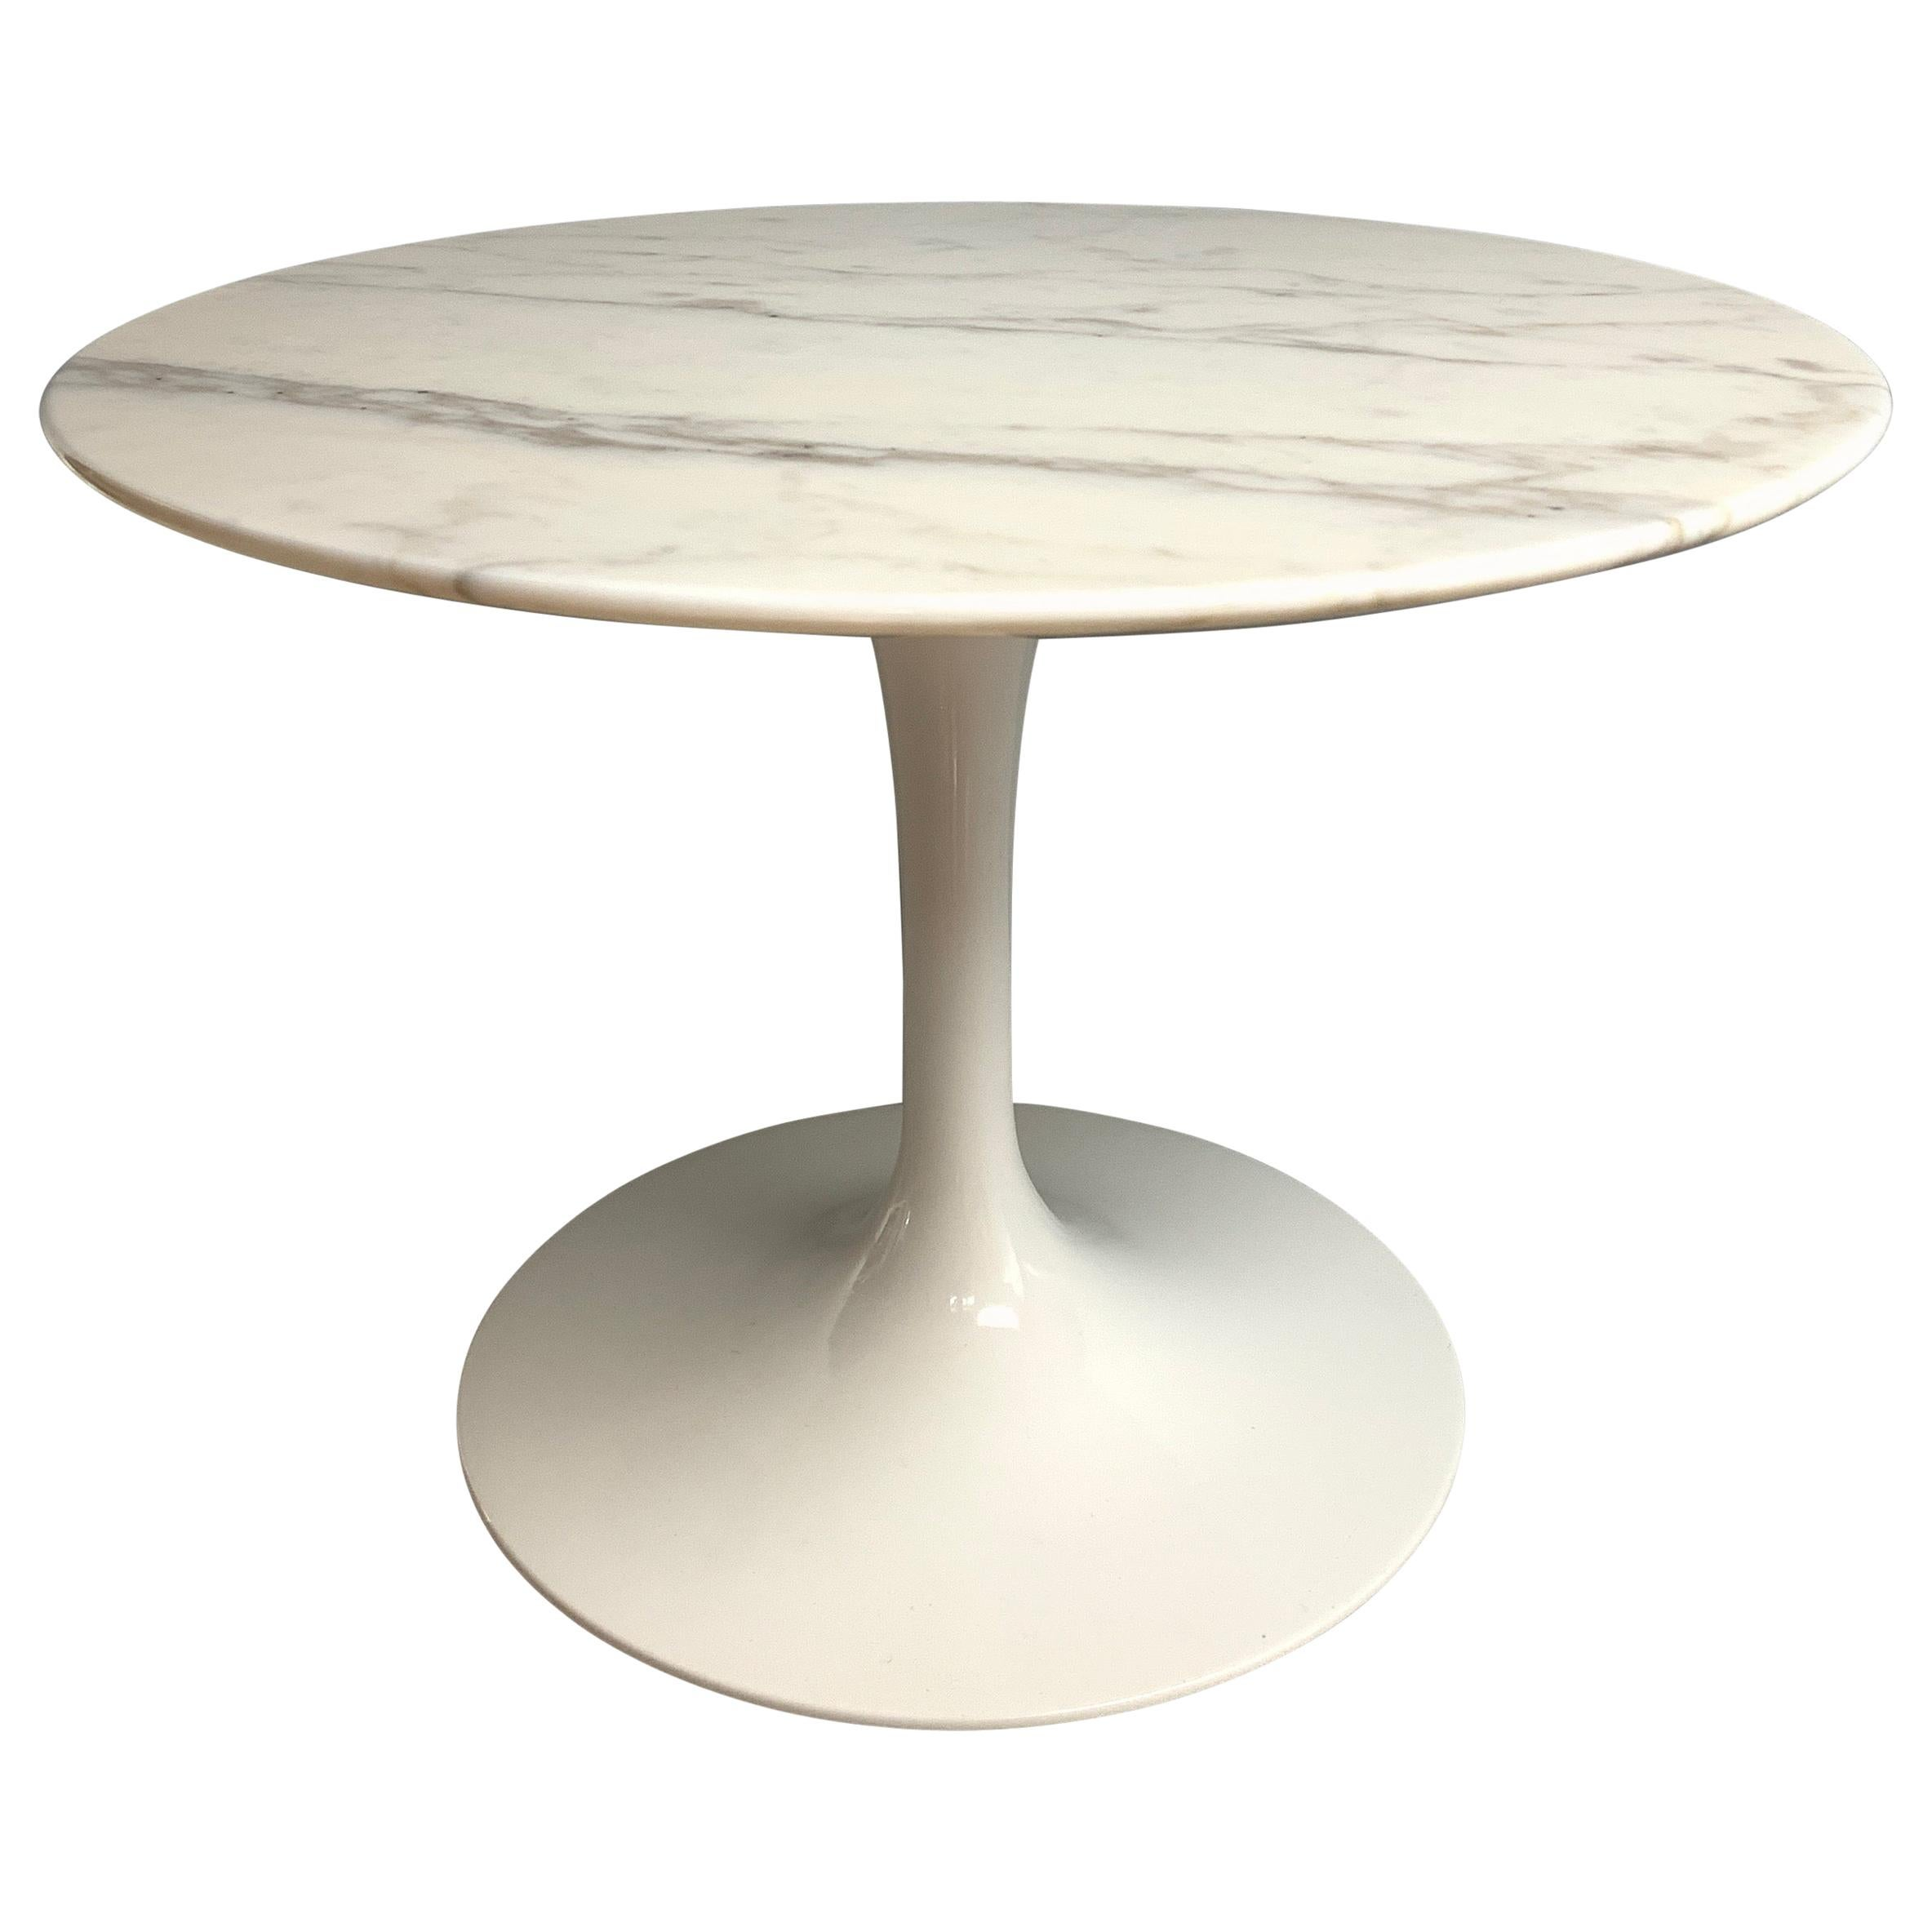 Tulip Side Table by Eero Saarinen for Knoll Studio